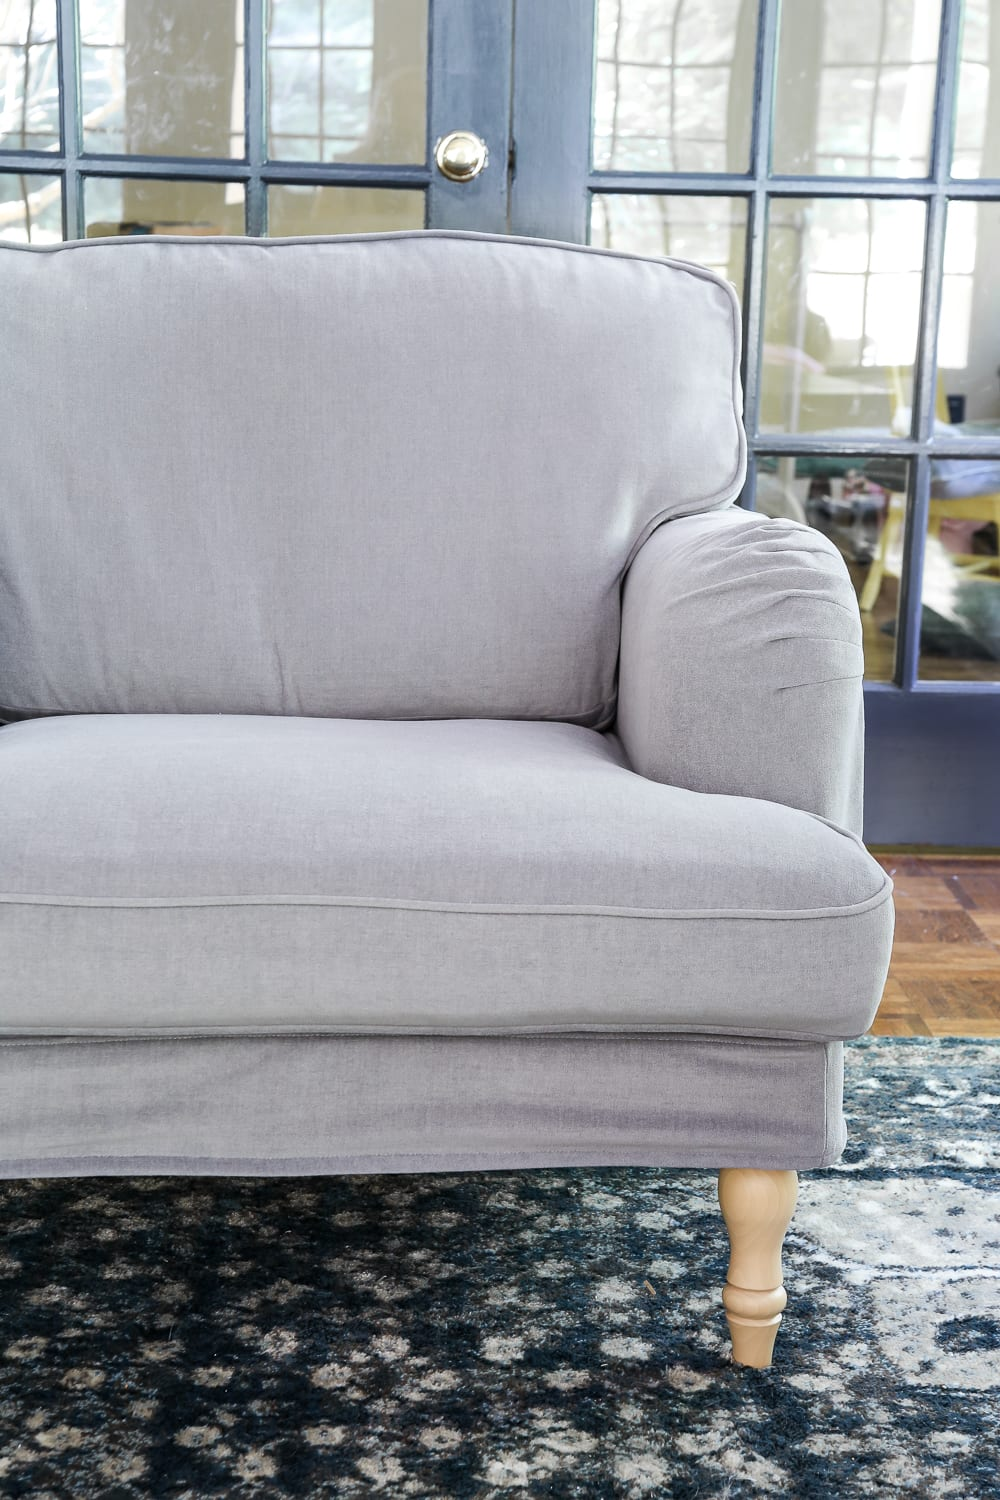 Living room, dining room, home. IKEA's New Sofa and Chairs and How to Keep Them Clean ...